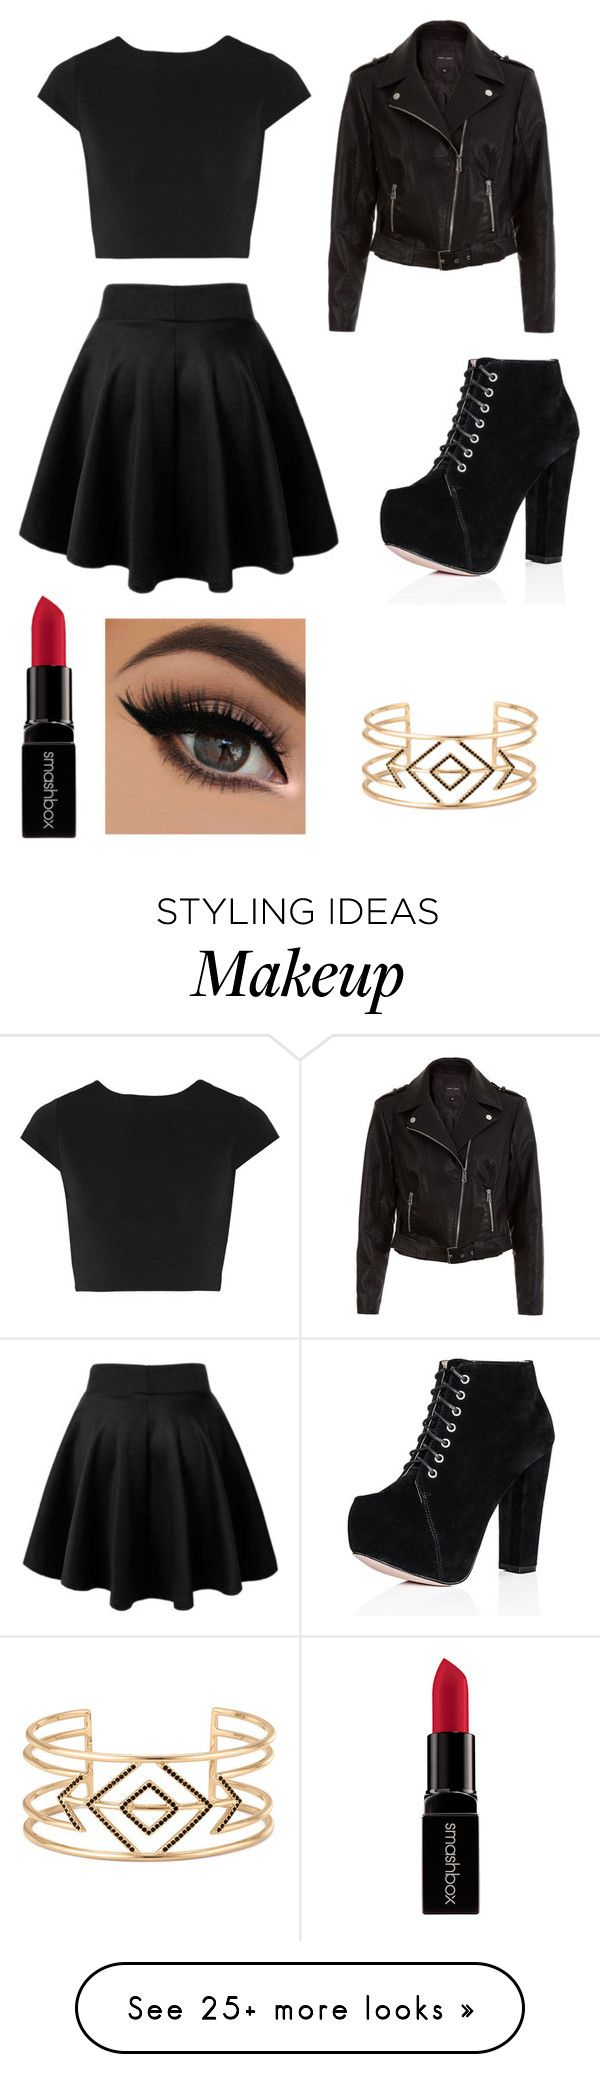 """Untitled #1"" by jihanedina724 on Polyvore featuring Alice + Olivia, Smashbox, Stella & Dot, women's clothing, women's fashion, women, female, woman, misses and juniors"